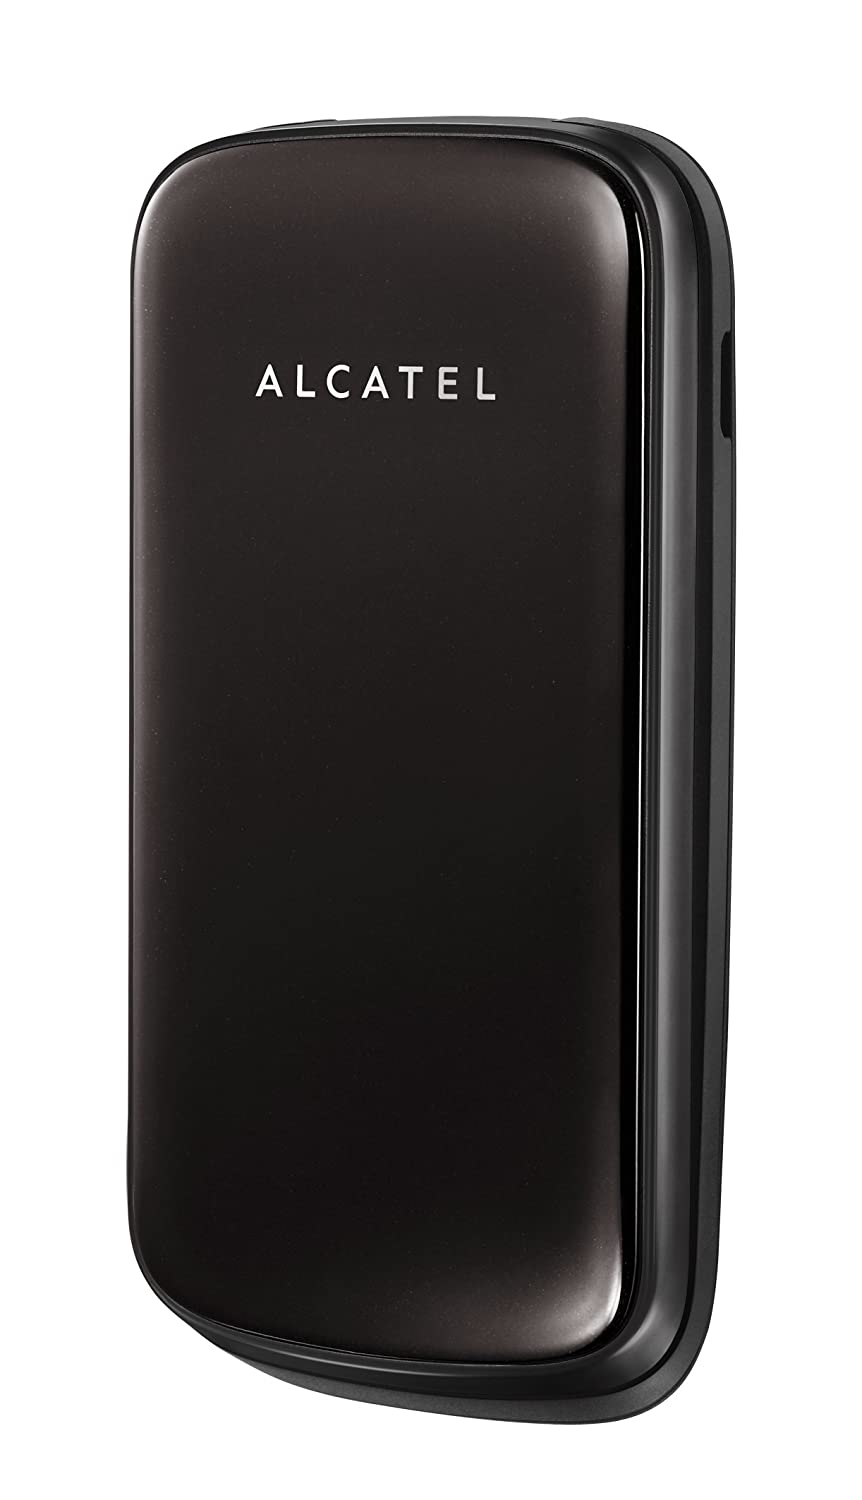 Alcatel Onetouch 1030 D Dual Alcatel One Touch Flip Phone